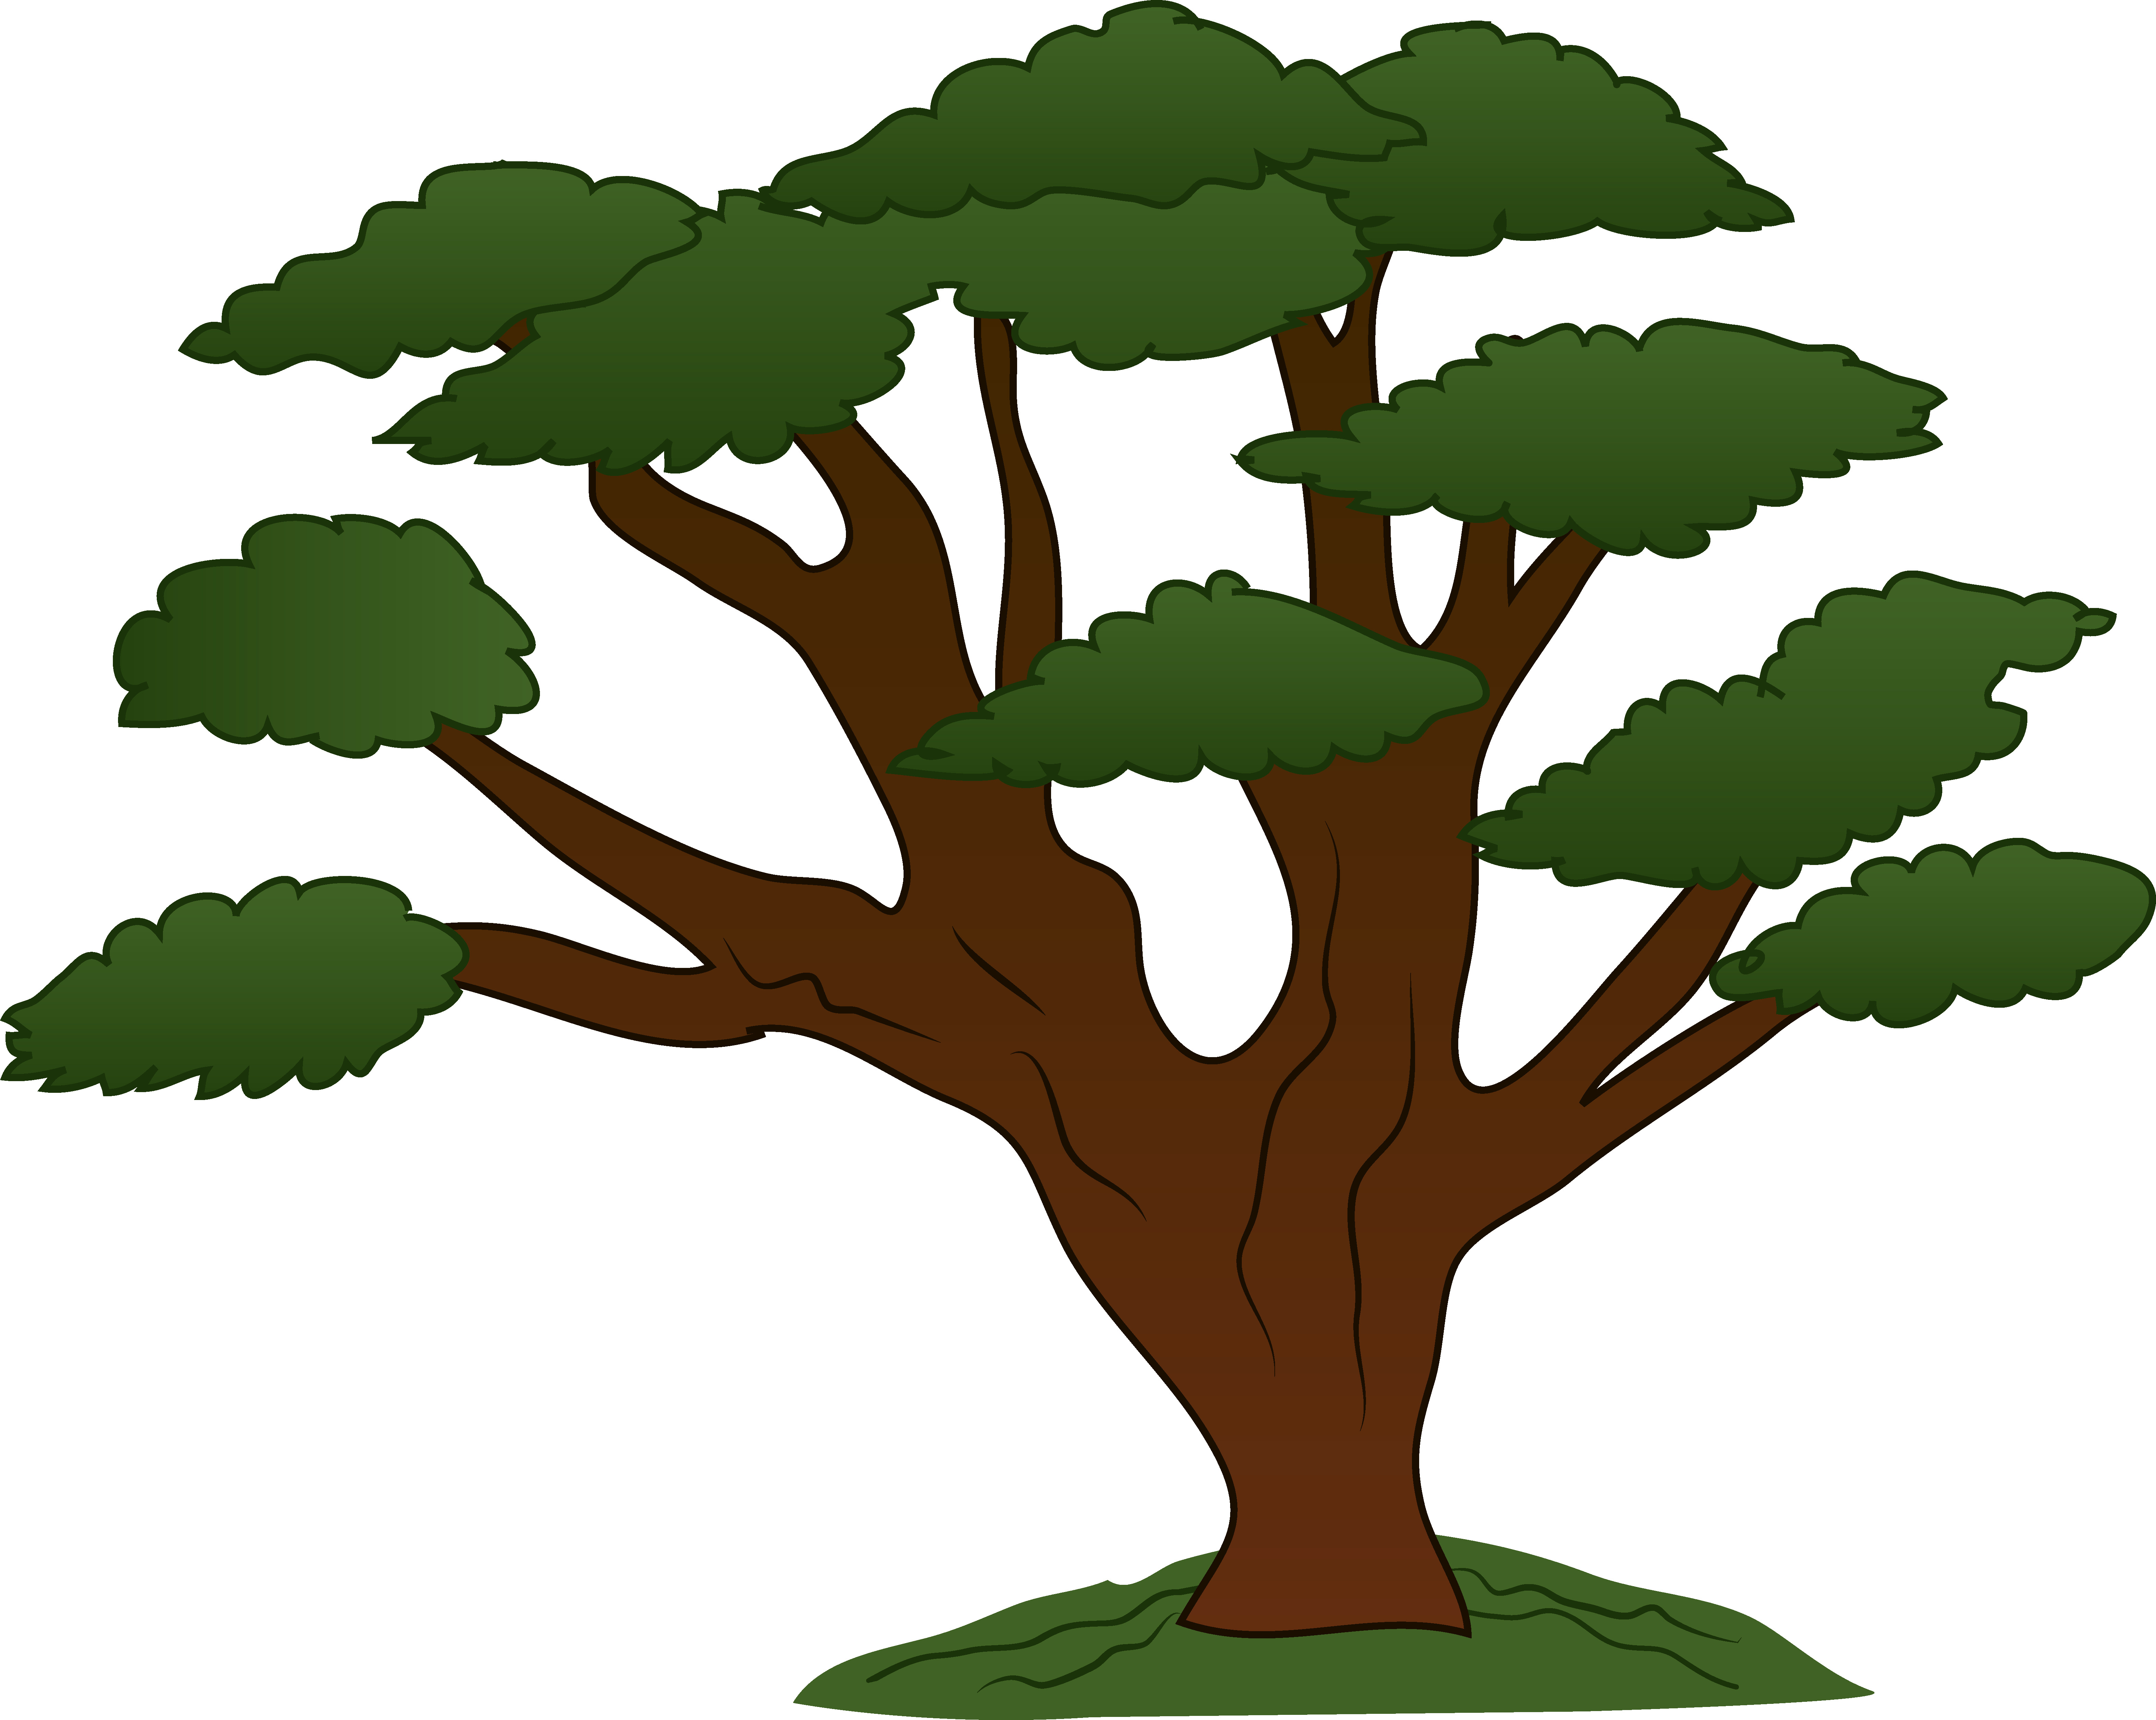 Tree clipart #2, Download drawings